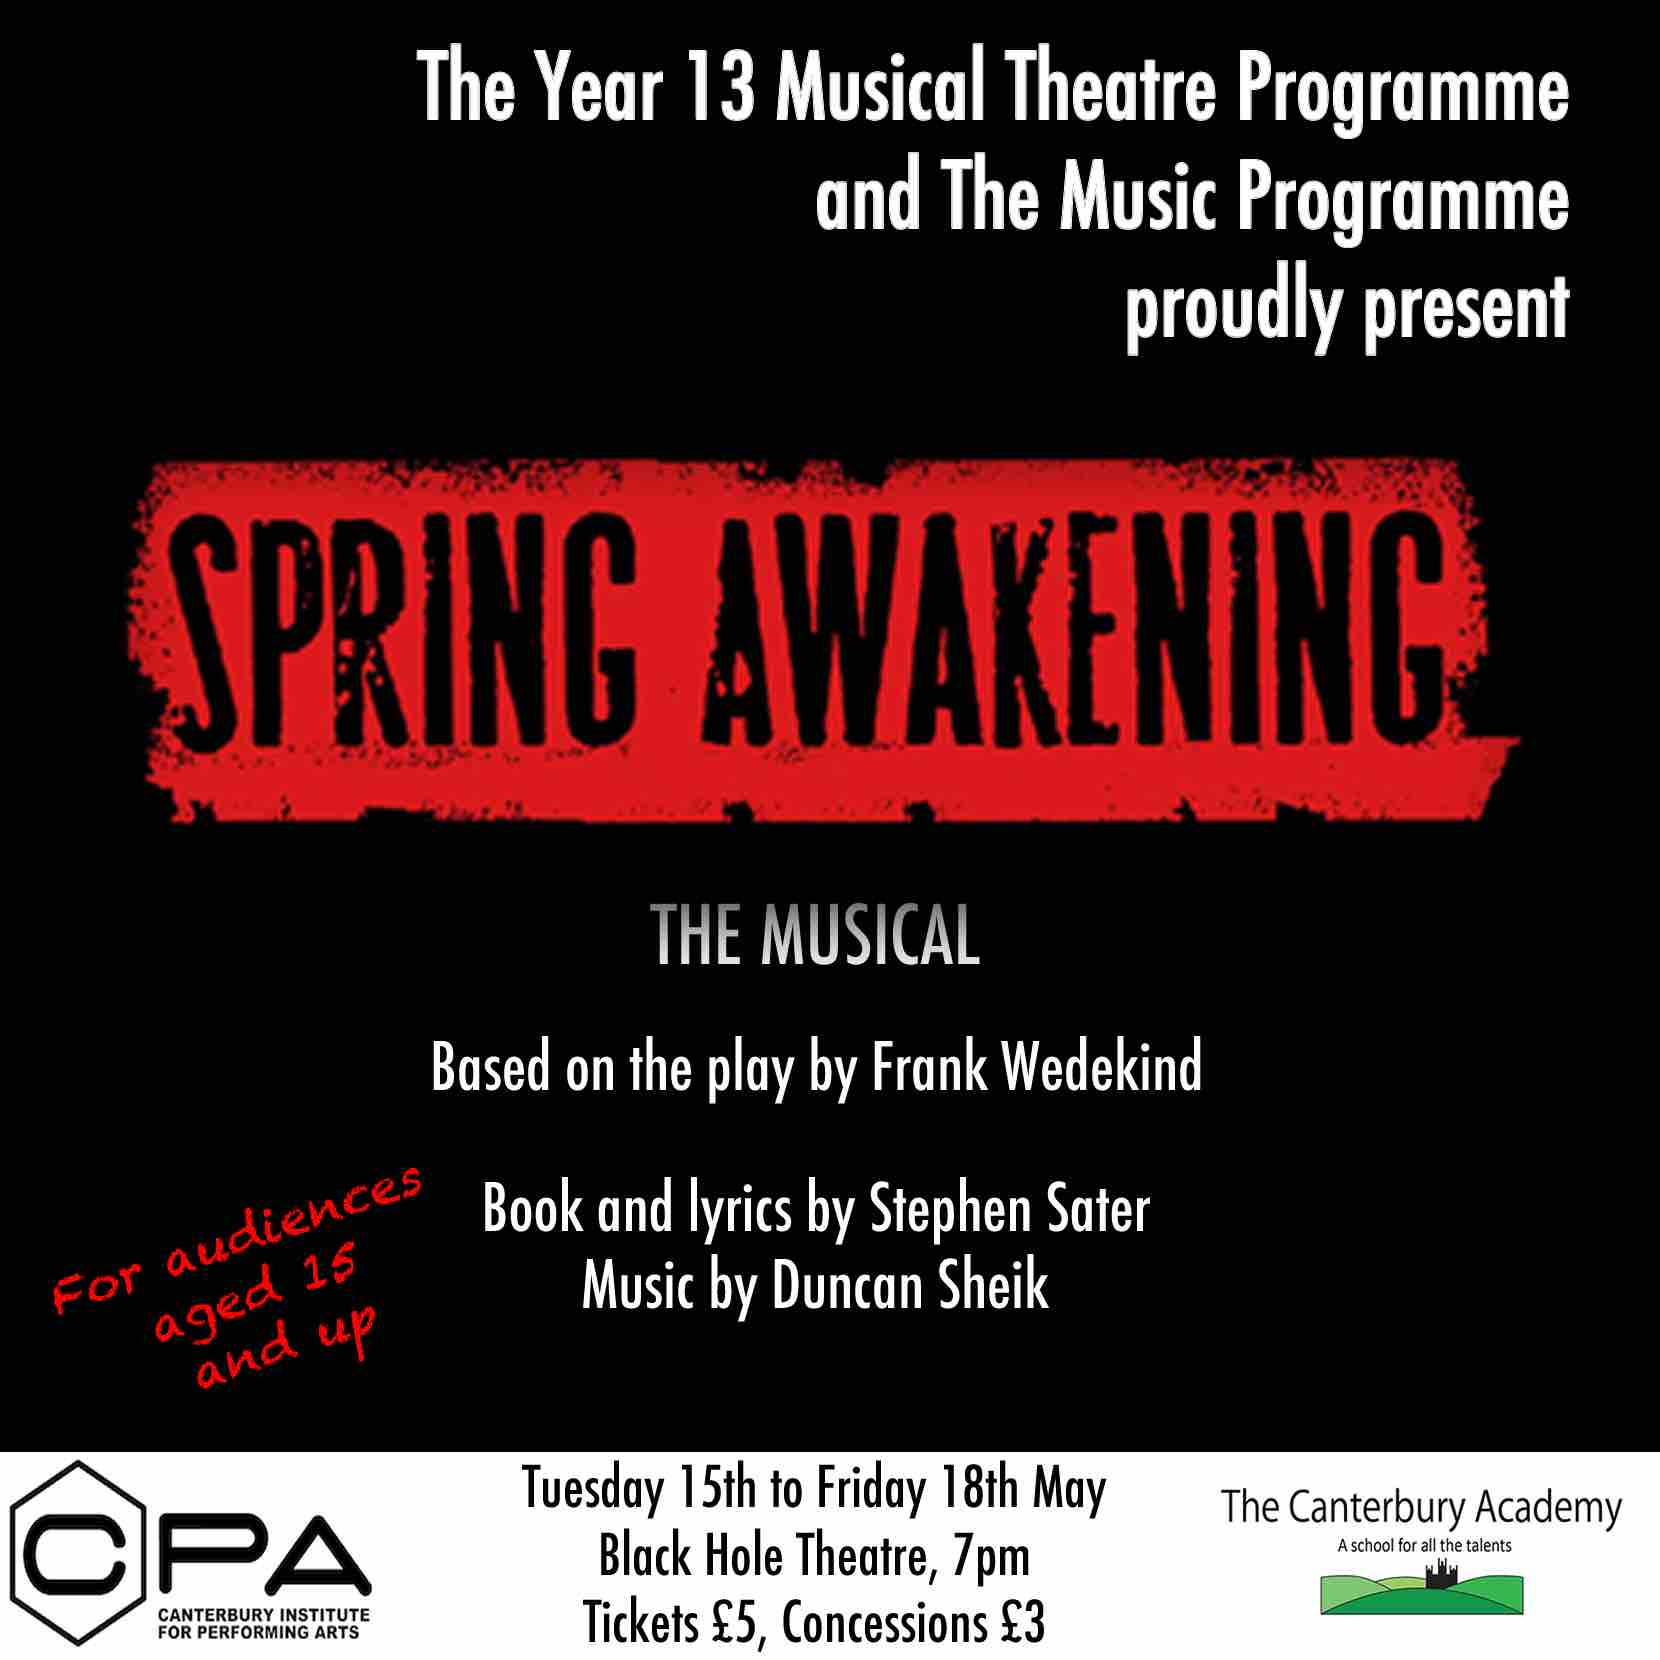 SPRING AWAKENING - The Musical at The Black Hole Theatre at